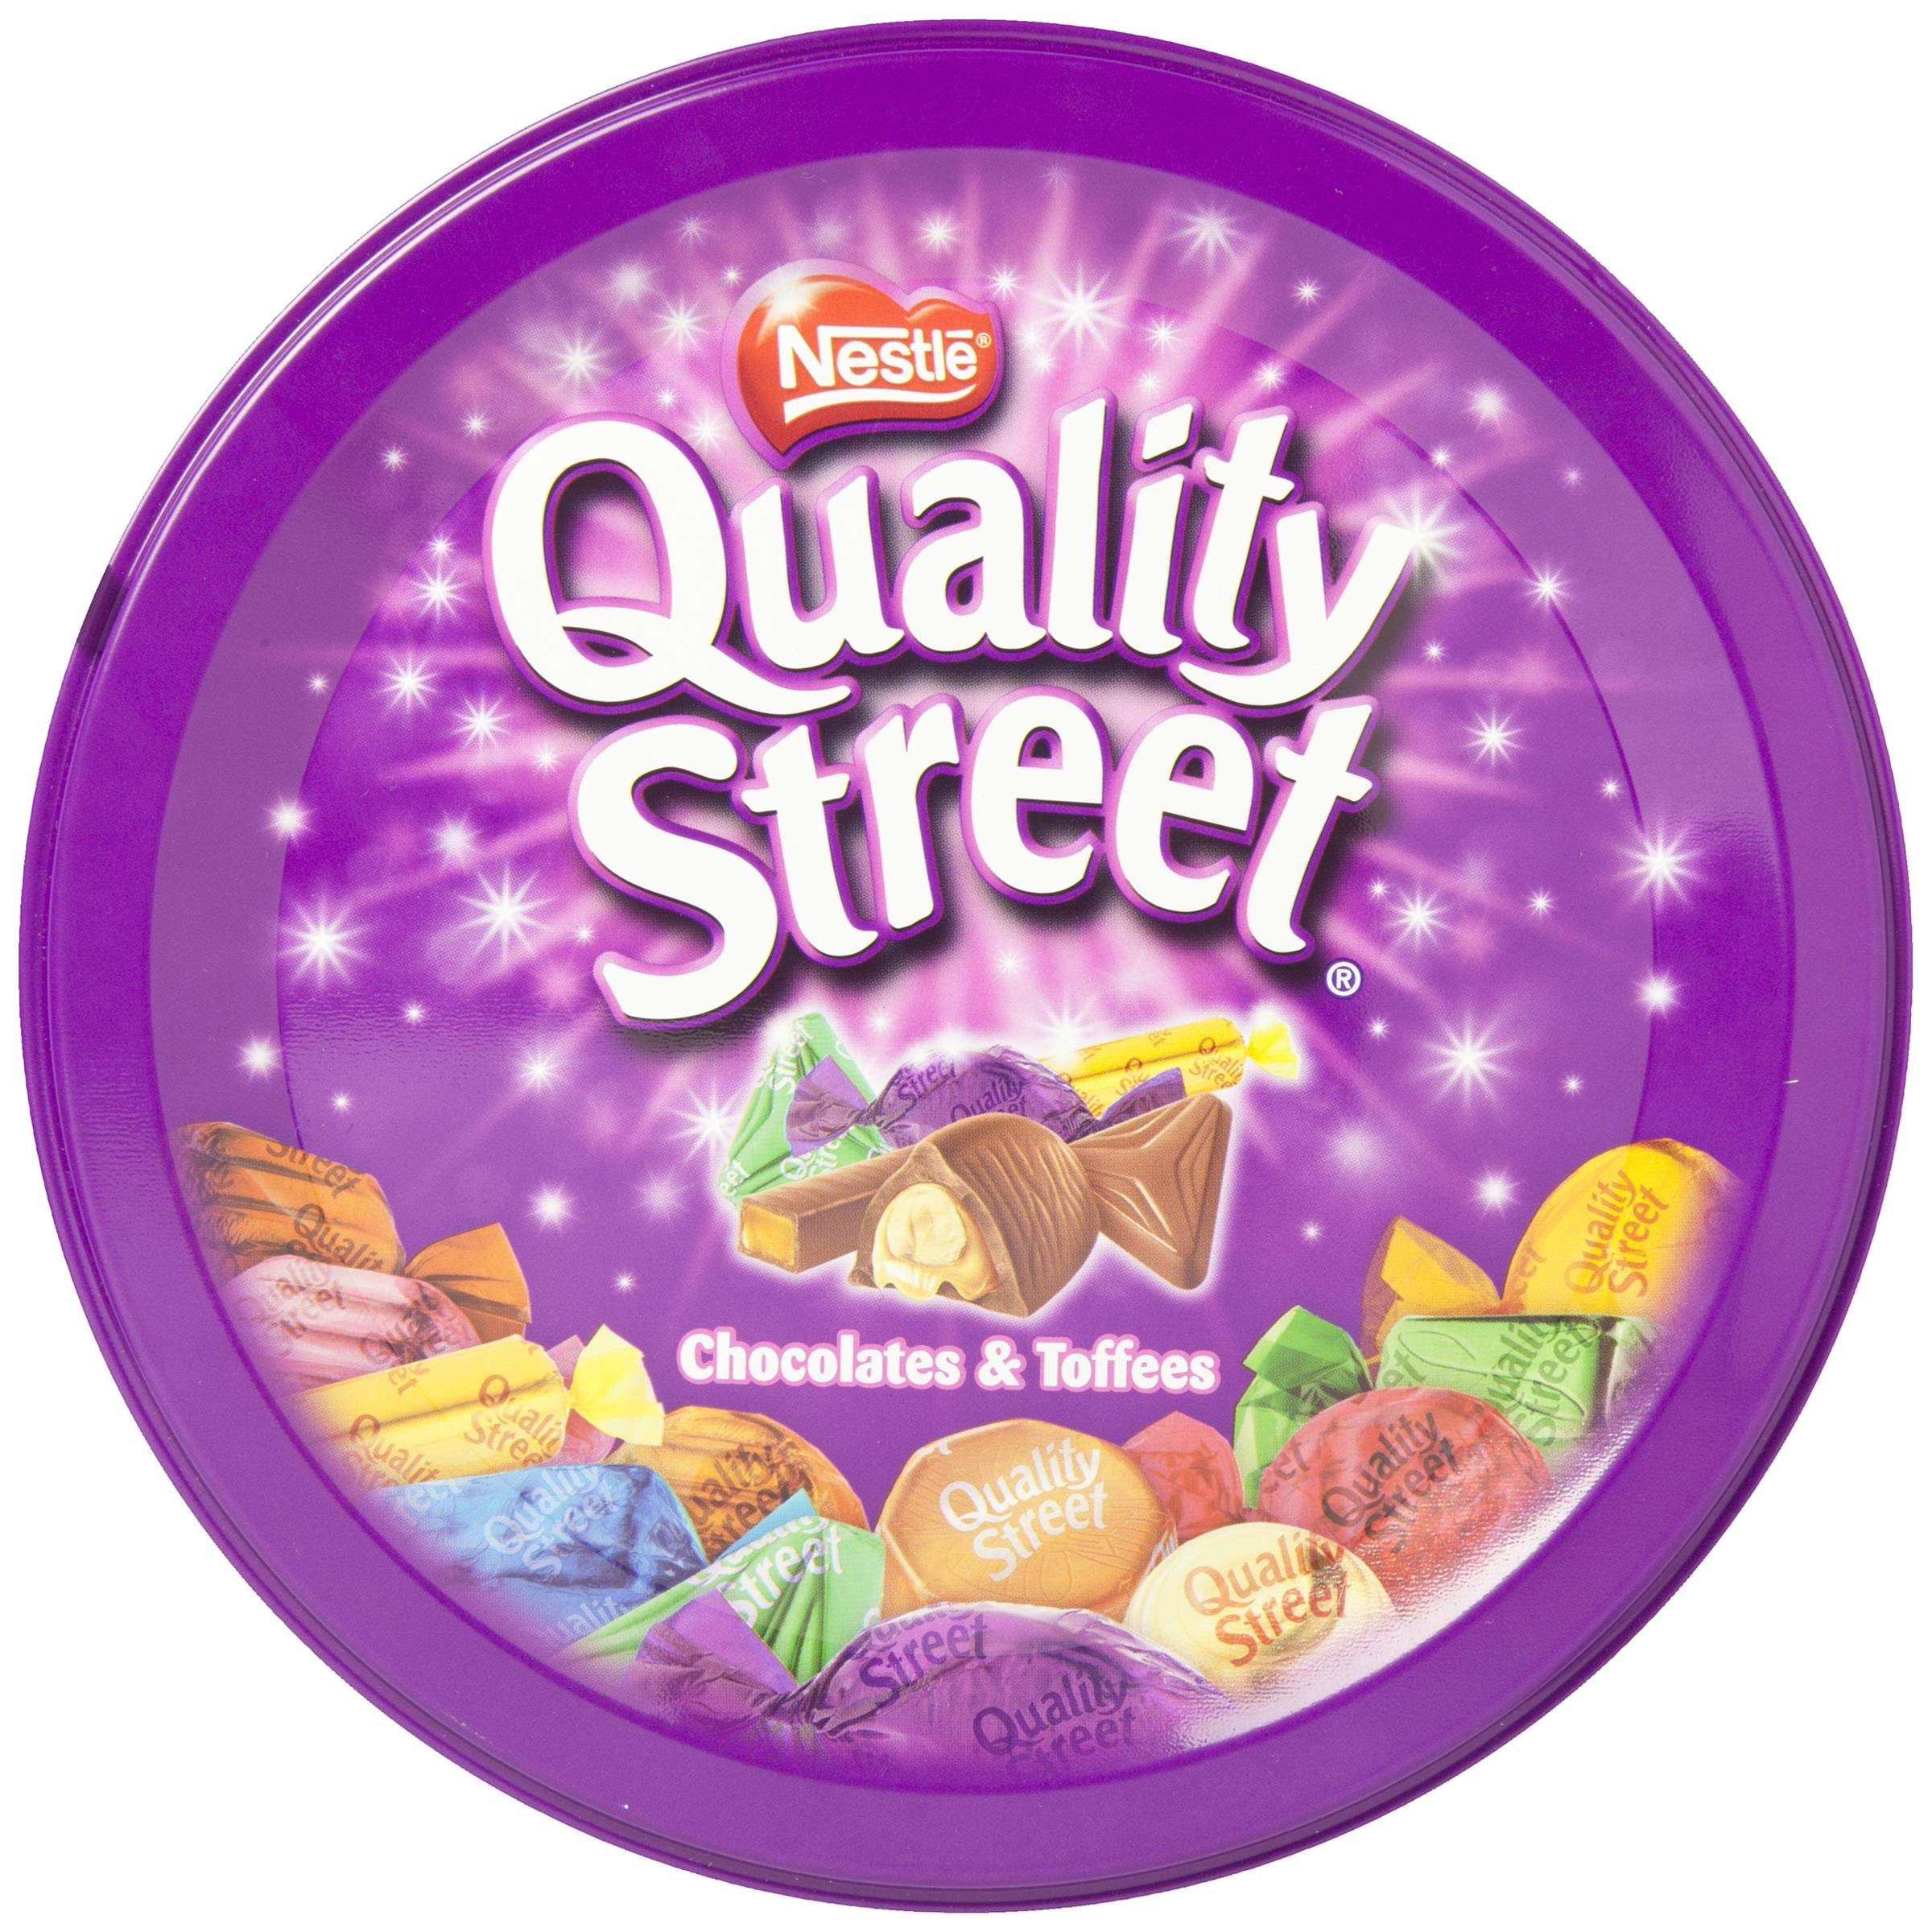 Nestle - Quality Street Round Tin - 480g by Nestle